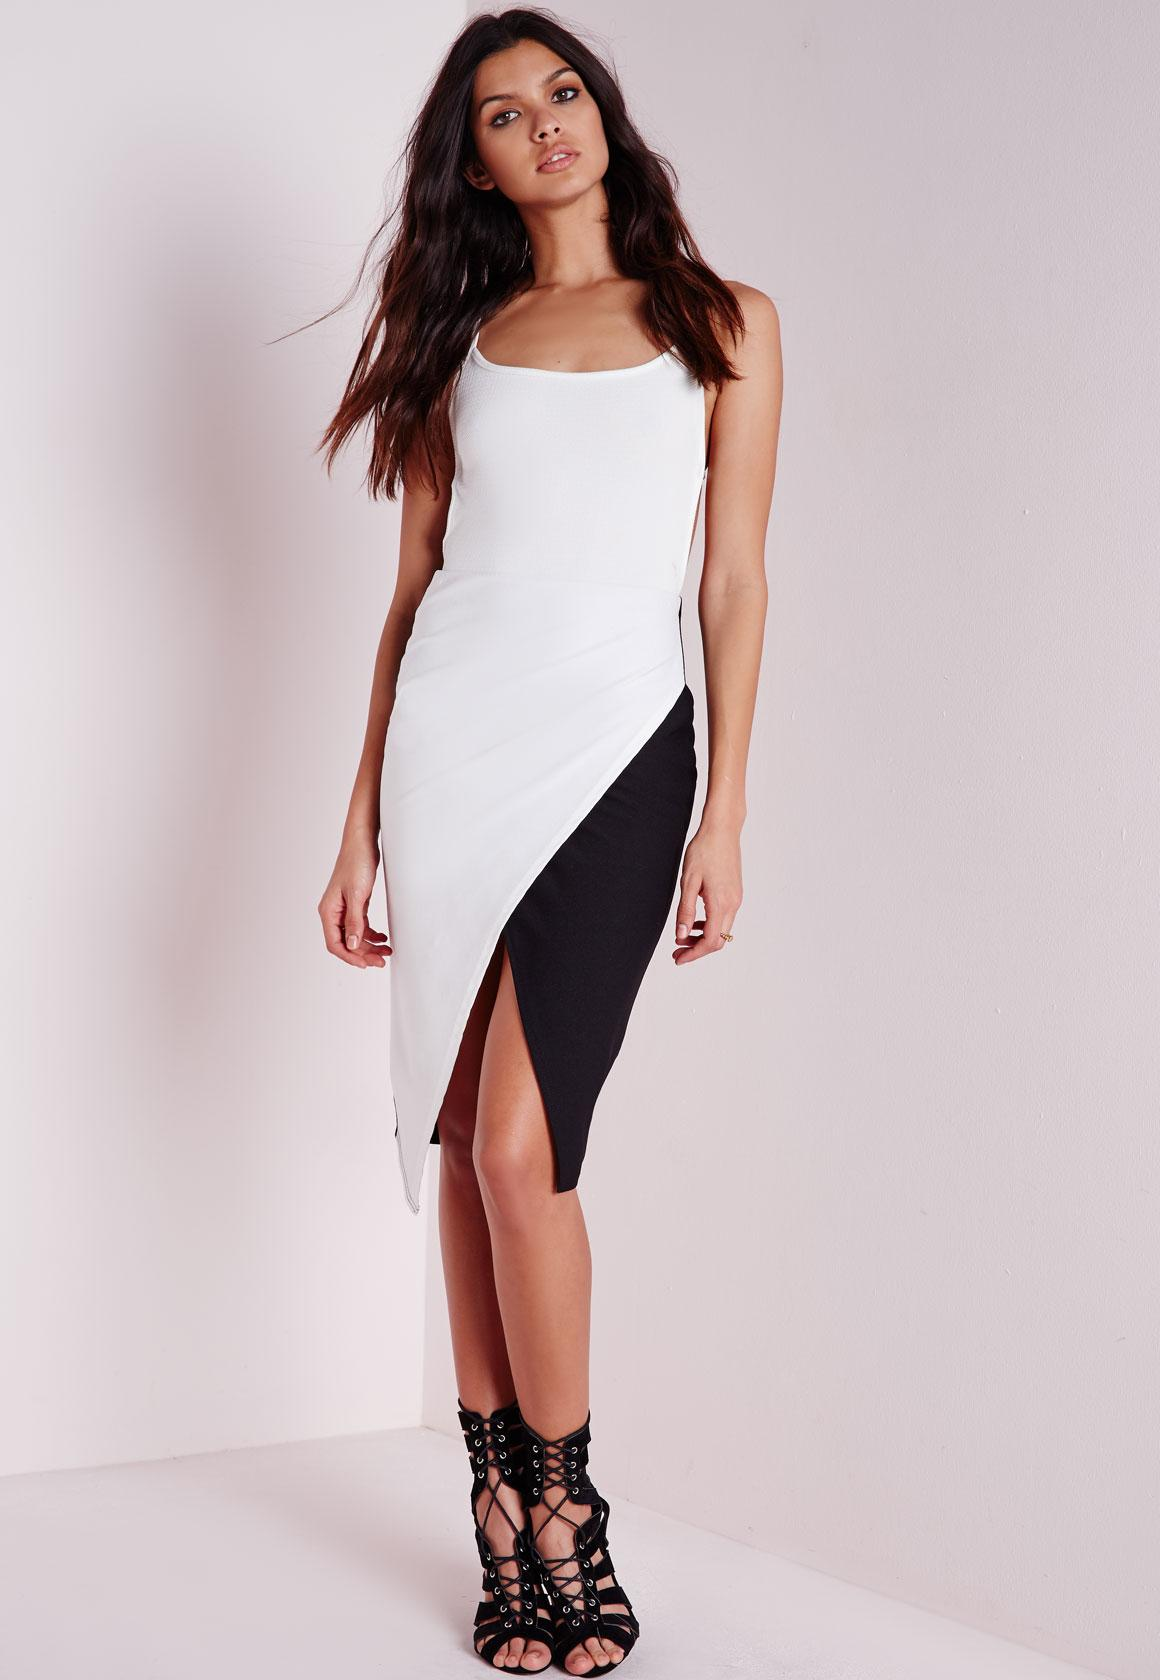 Contrast Wrap Midi Skirt Black/White - Contrast - Skirts - Missguided